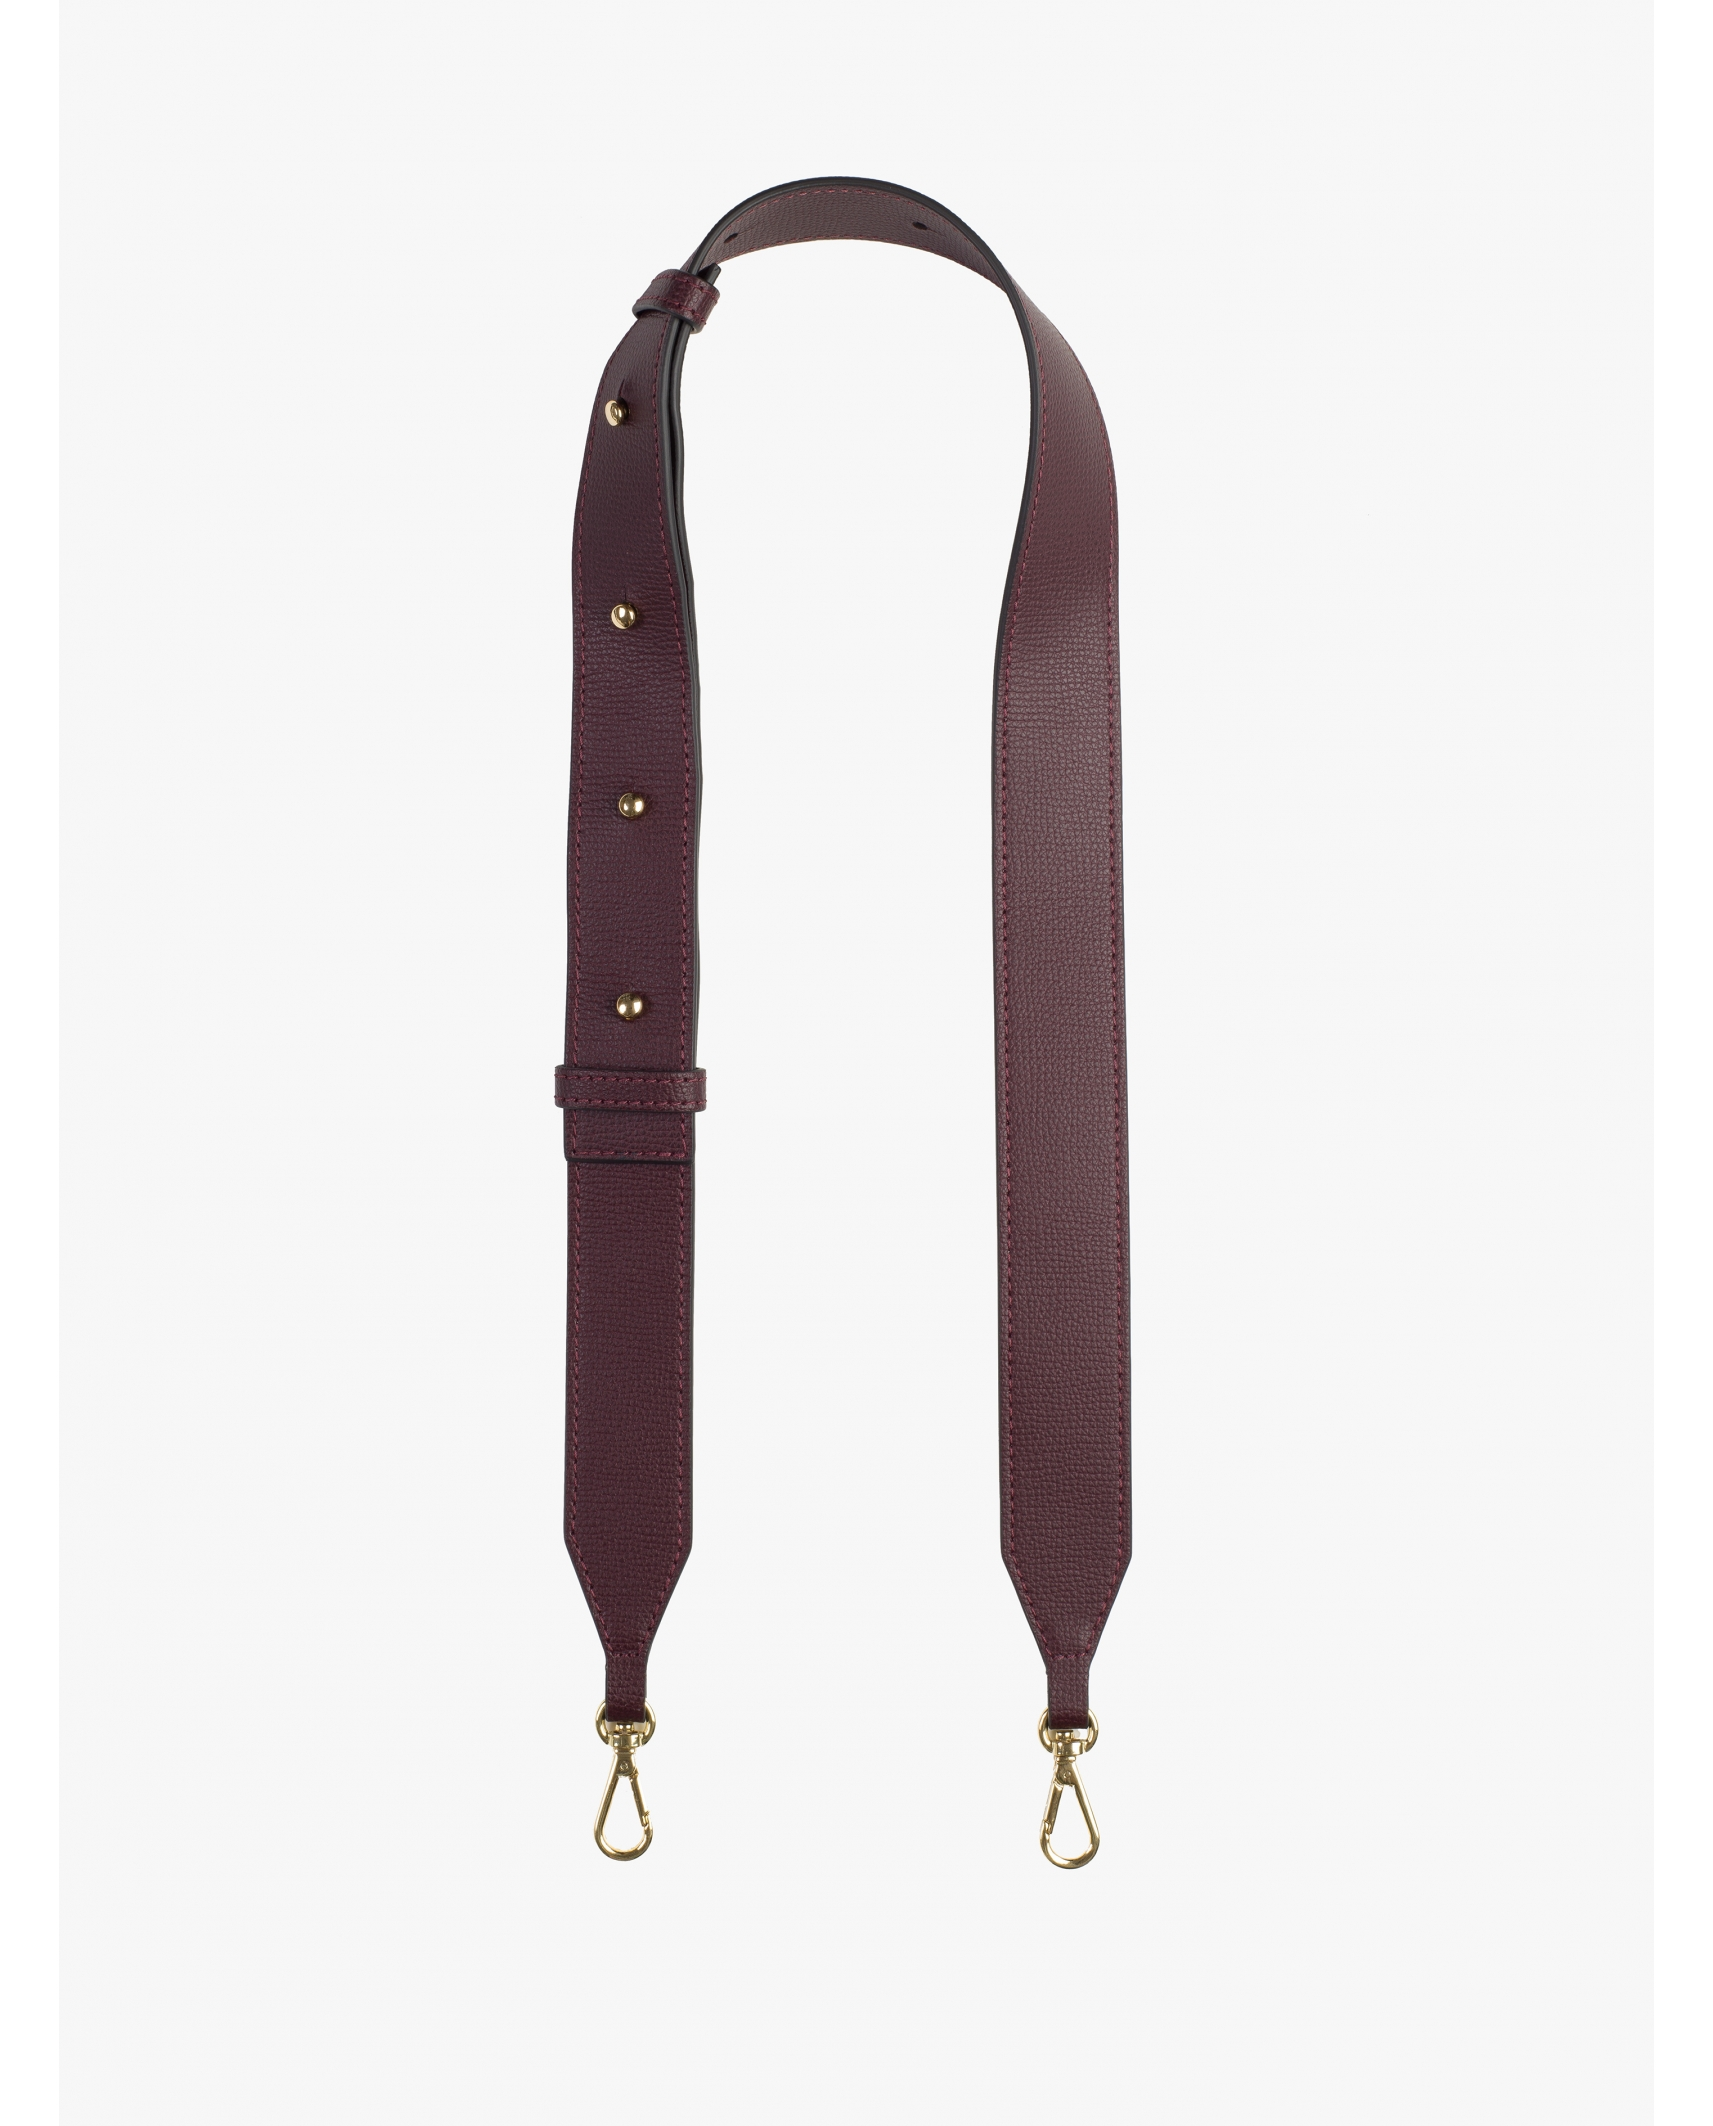 STRAP LARGE RUBY GRAINED